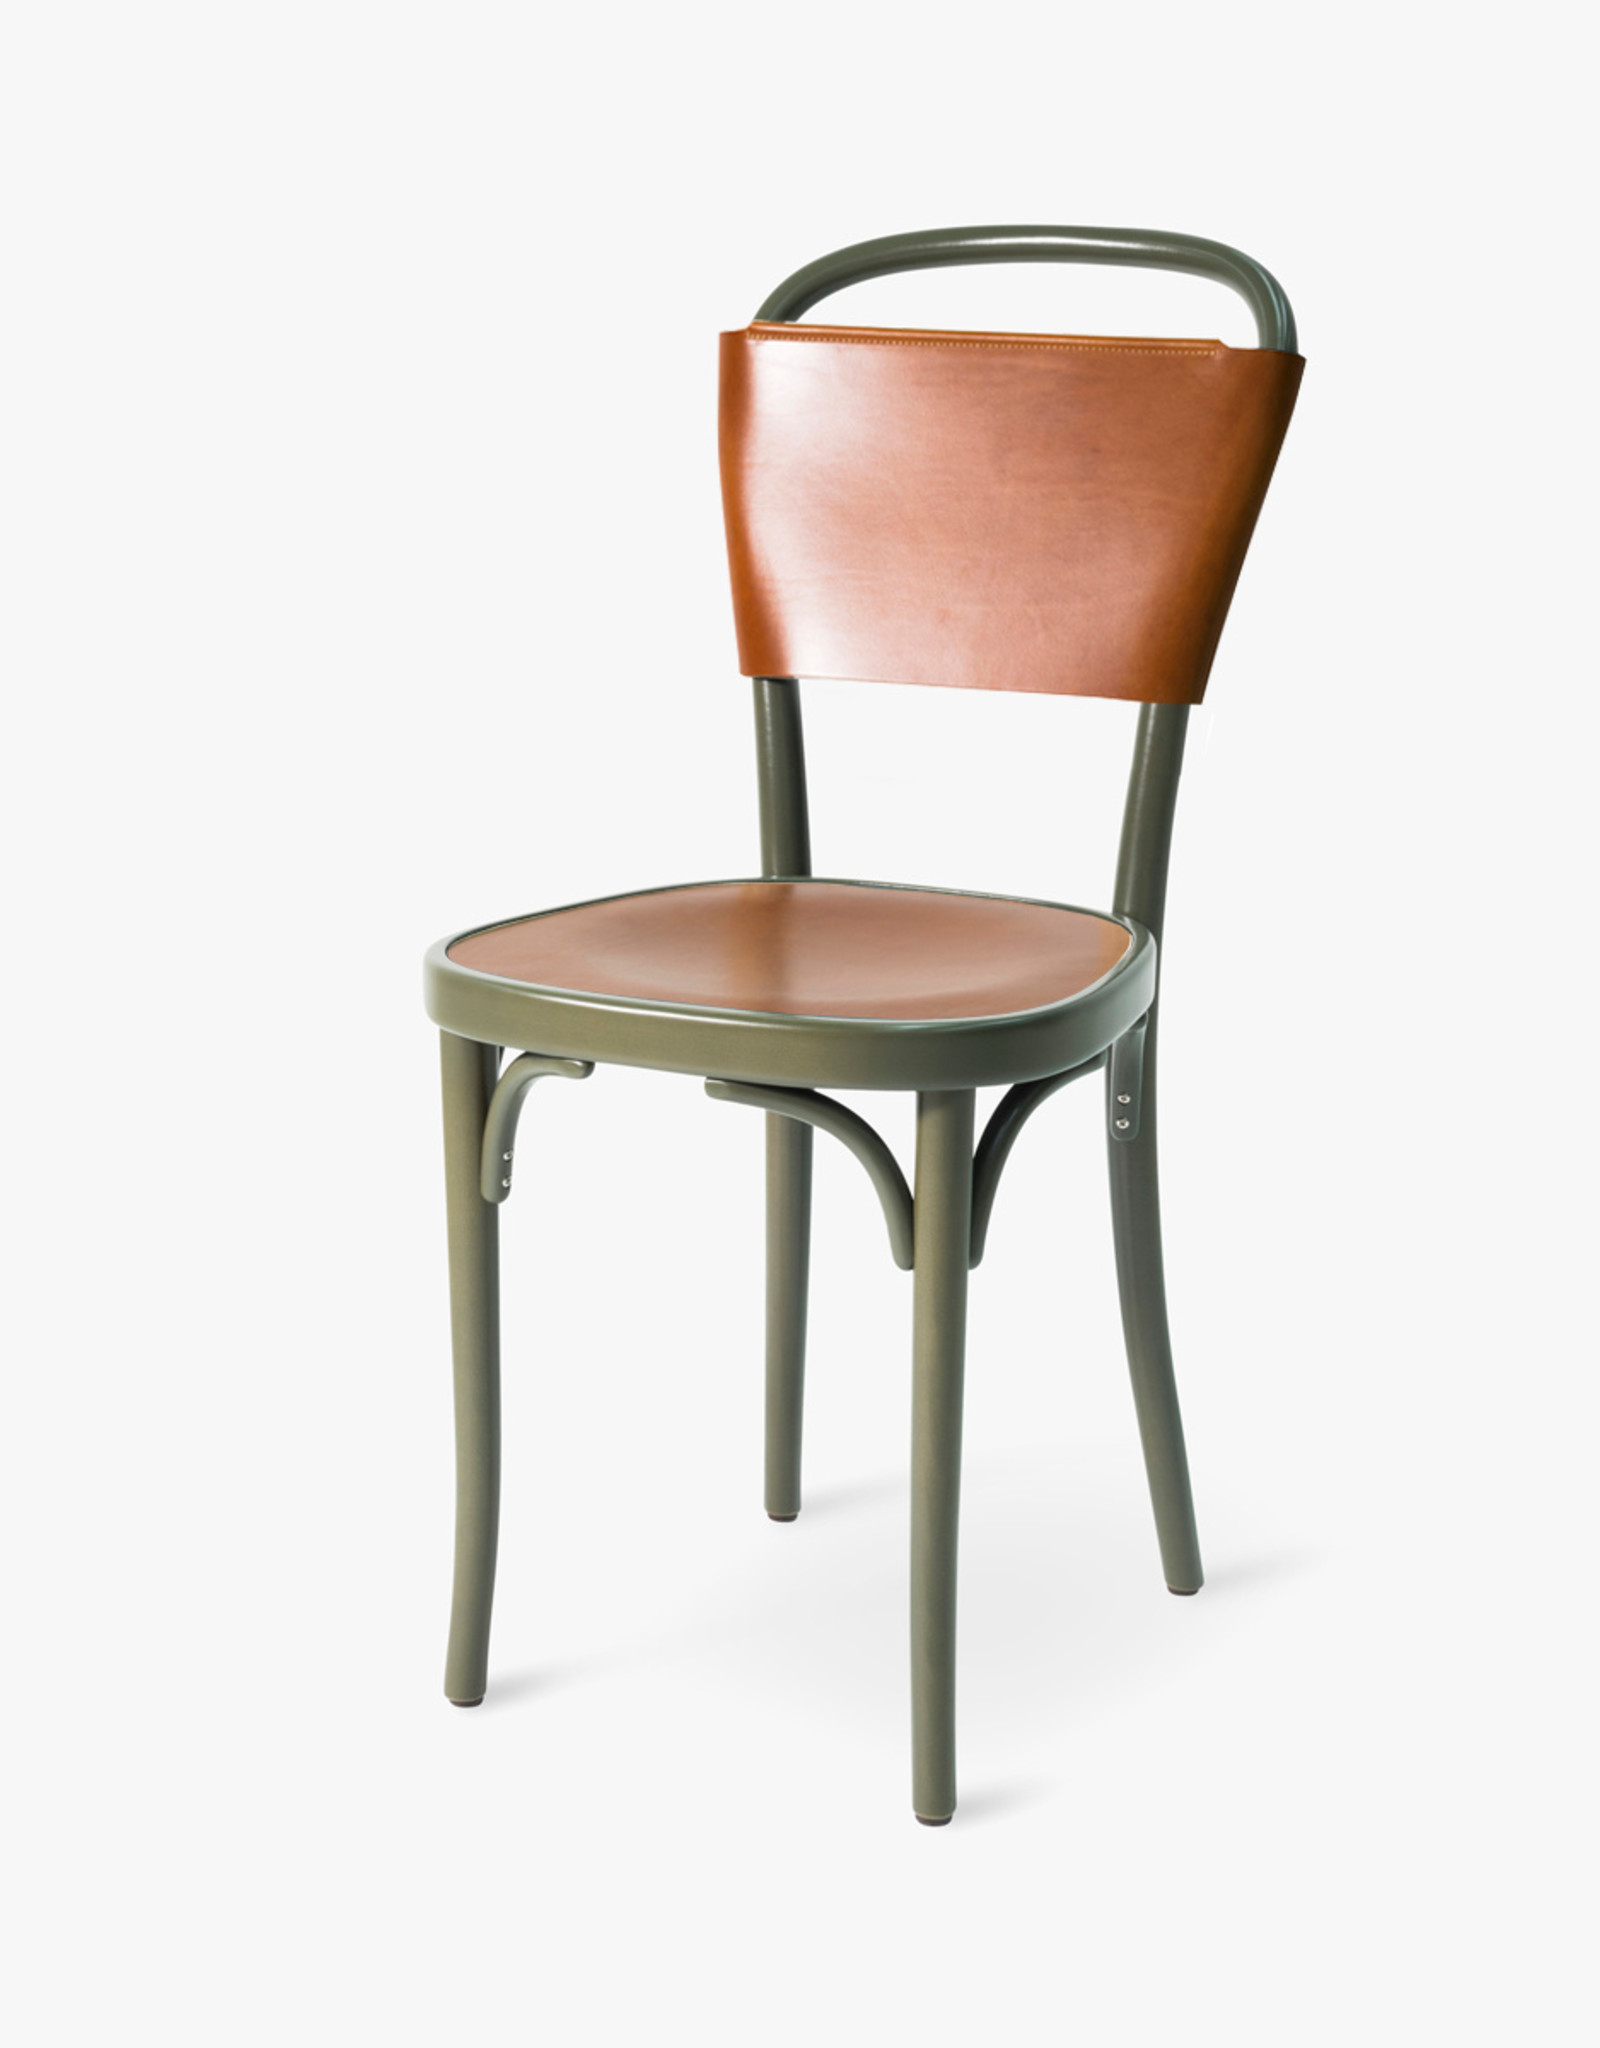 Vilda 3 chair by Jonas Bohlin | Cognac Tärnsjö leather | Green lacquered beech frame | SH470mm